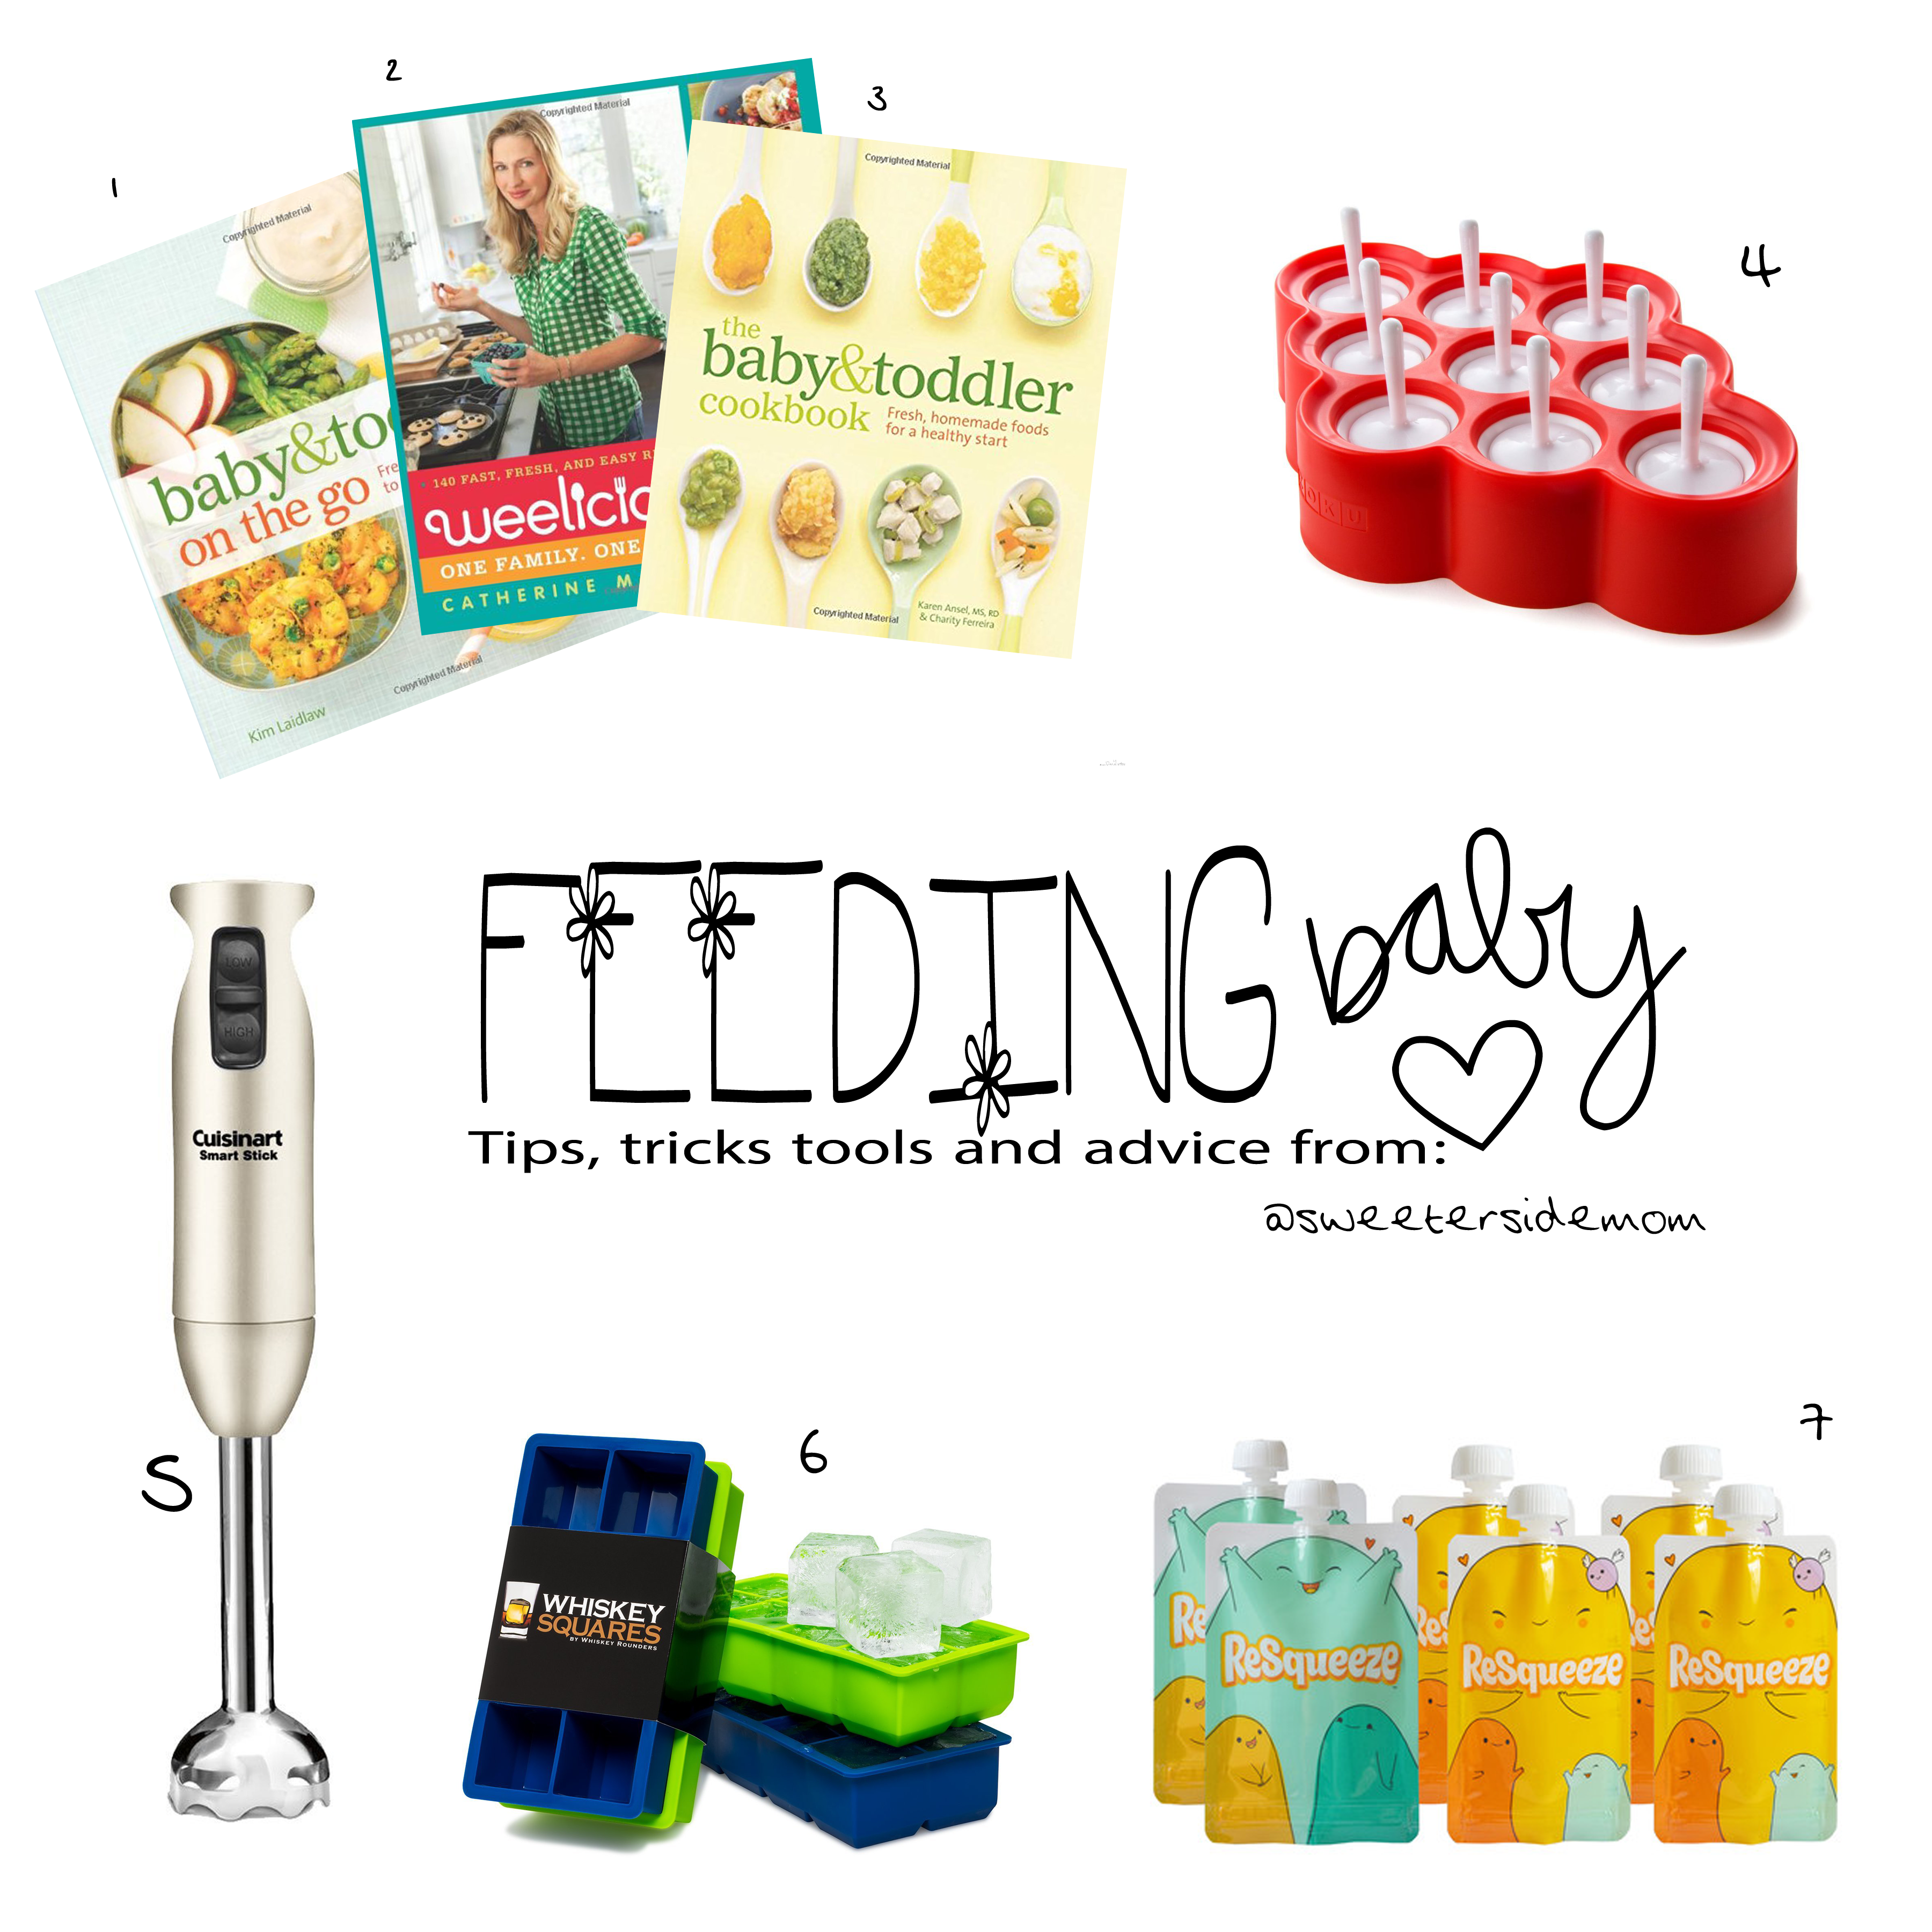 FEEDING BABY (purees and Baby Led Weaning)